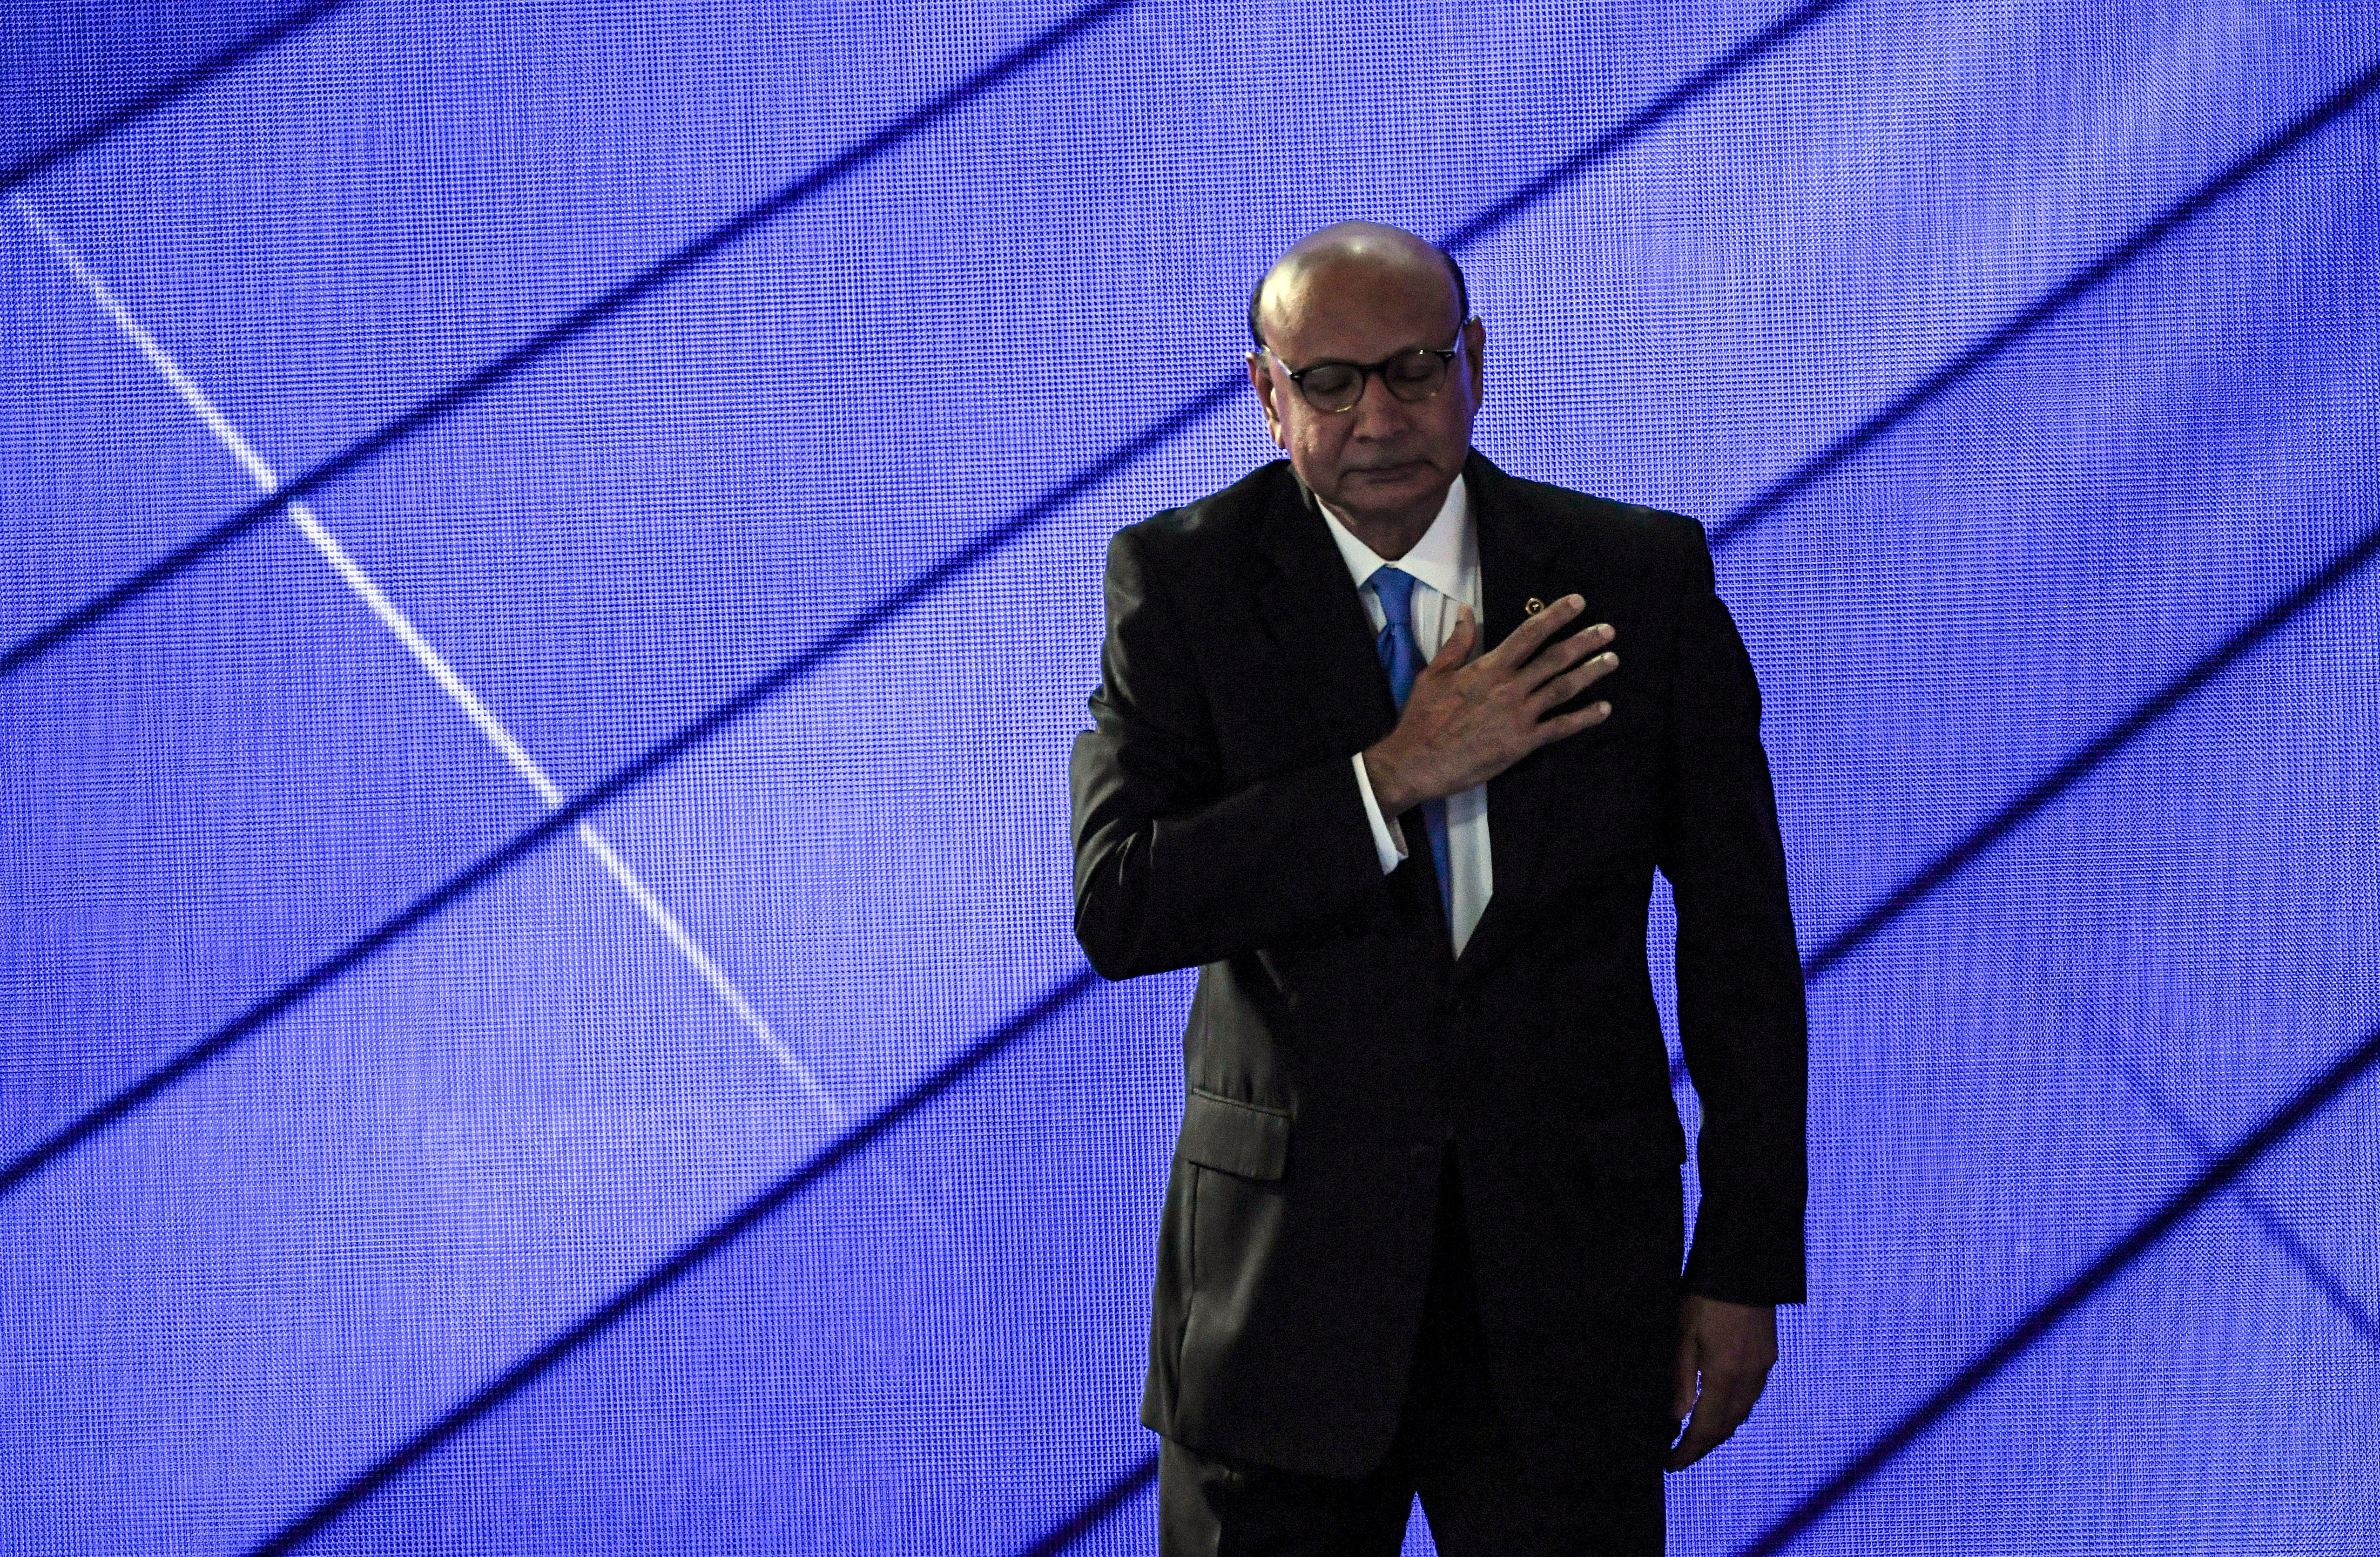 PHILADELPHIA, PA - JULY 28: Khzir Khan, the father of fallen soldier Humayun Kahn, pauses before leaving the stage after addressing the crowd during the final day of the Democratic National Convention in Philadelphia on Thursday, July 28, 2016. (Photo by Toni L. Sandys/The Washington Post via Getty Images)